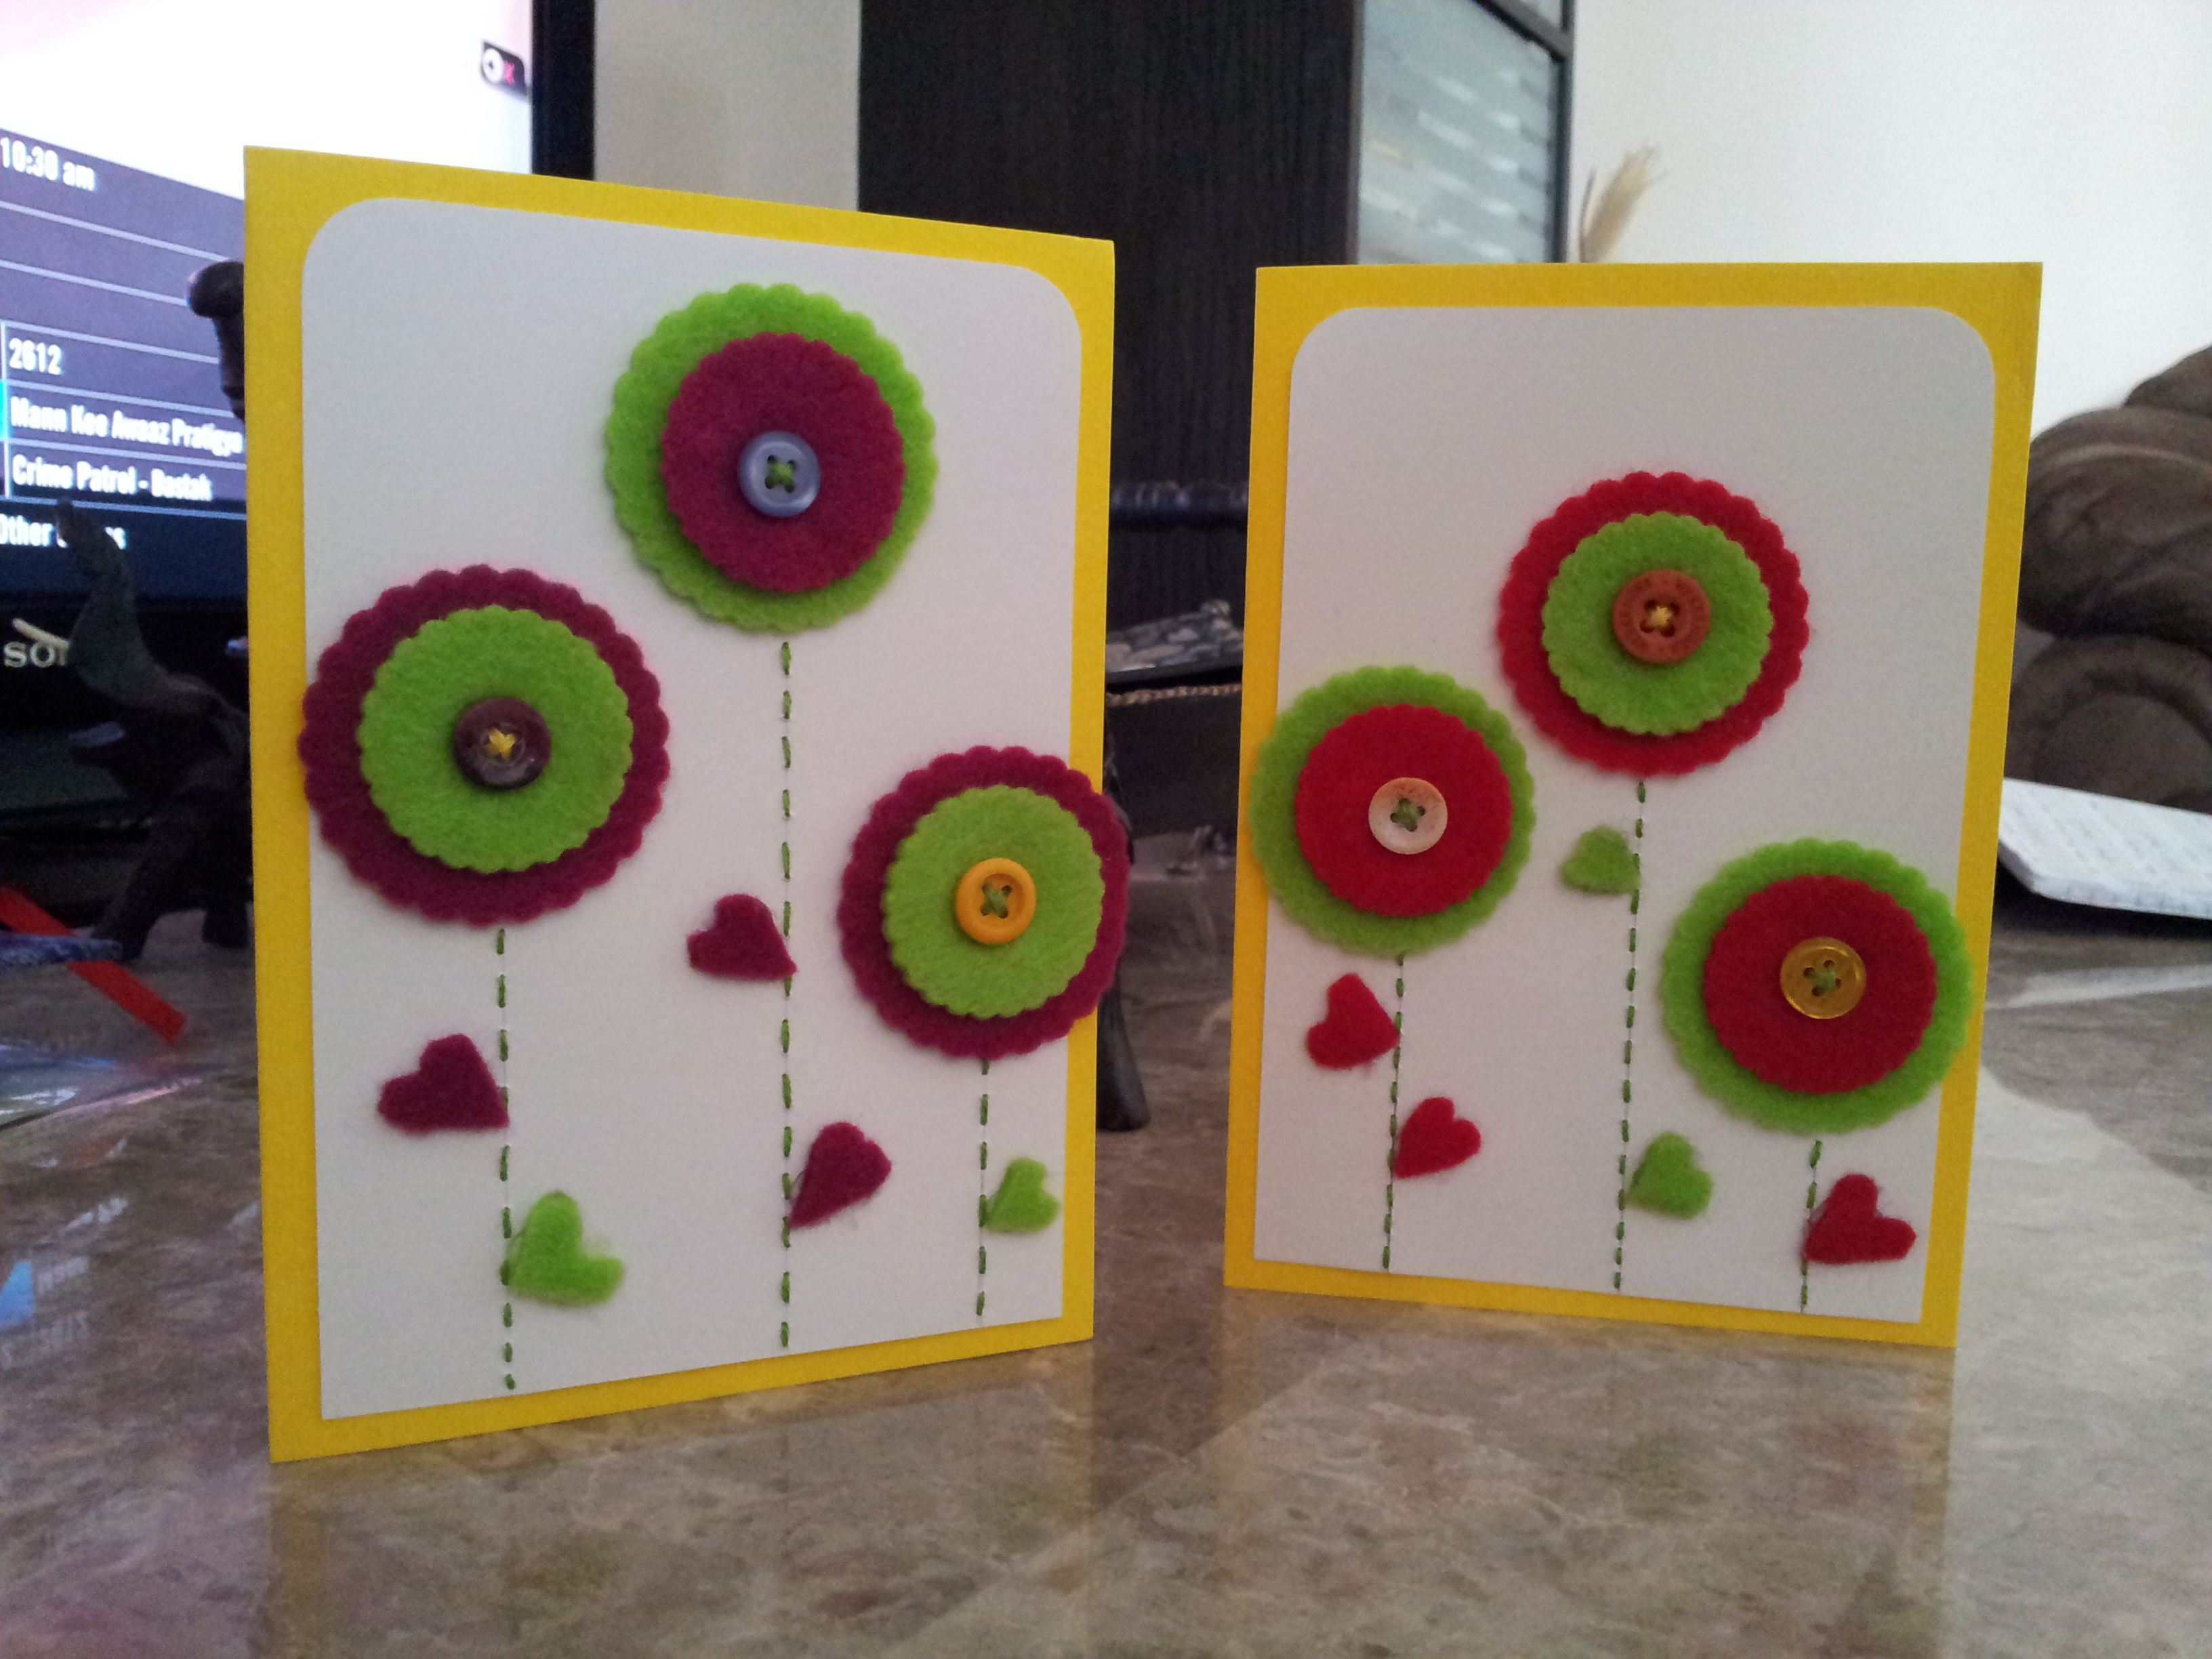 Hand Card Making Ideas Part - 33: Happy New Year Card Making Handmade Designs Samples Images 2018 - Greetings  Quotes Wishes Messages